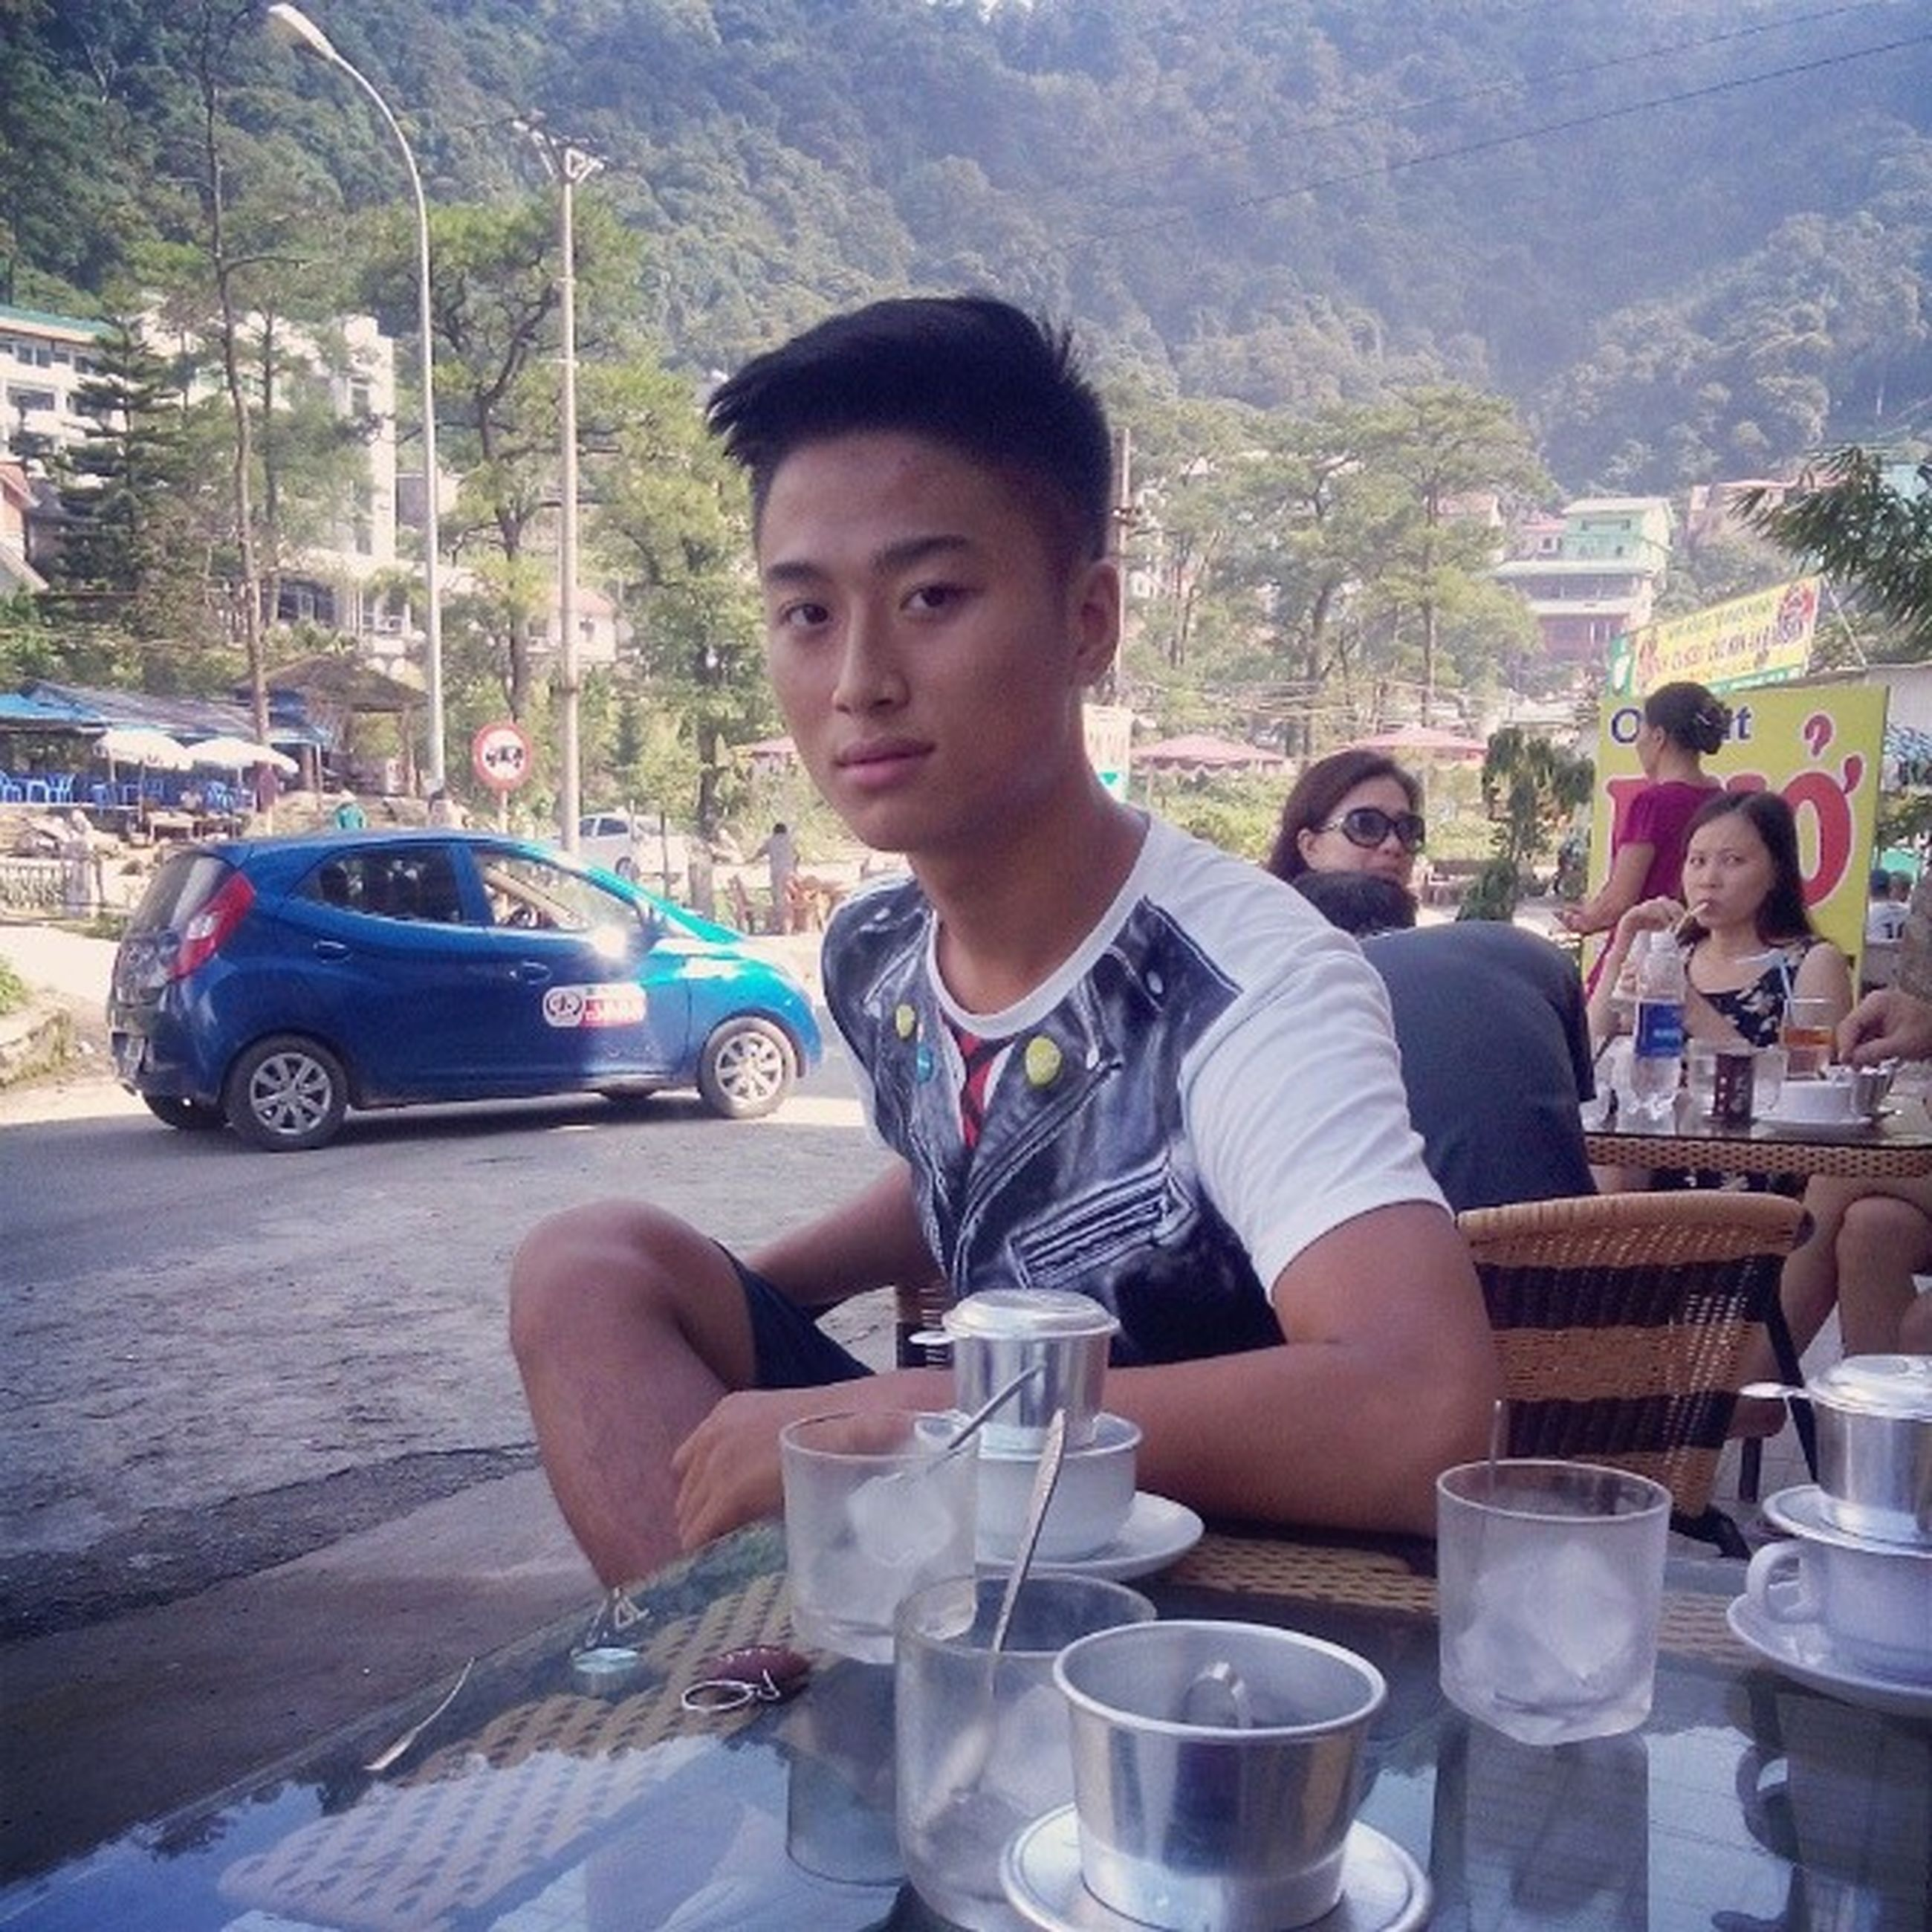 lifestyles, sitting, casual clothing, leisure activity, person, food and drink, looking at camera, young men, young adult, front view, portrait, table, holding, smiling, food, incidental people, drink, sunglasses